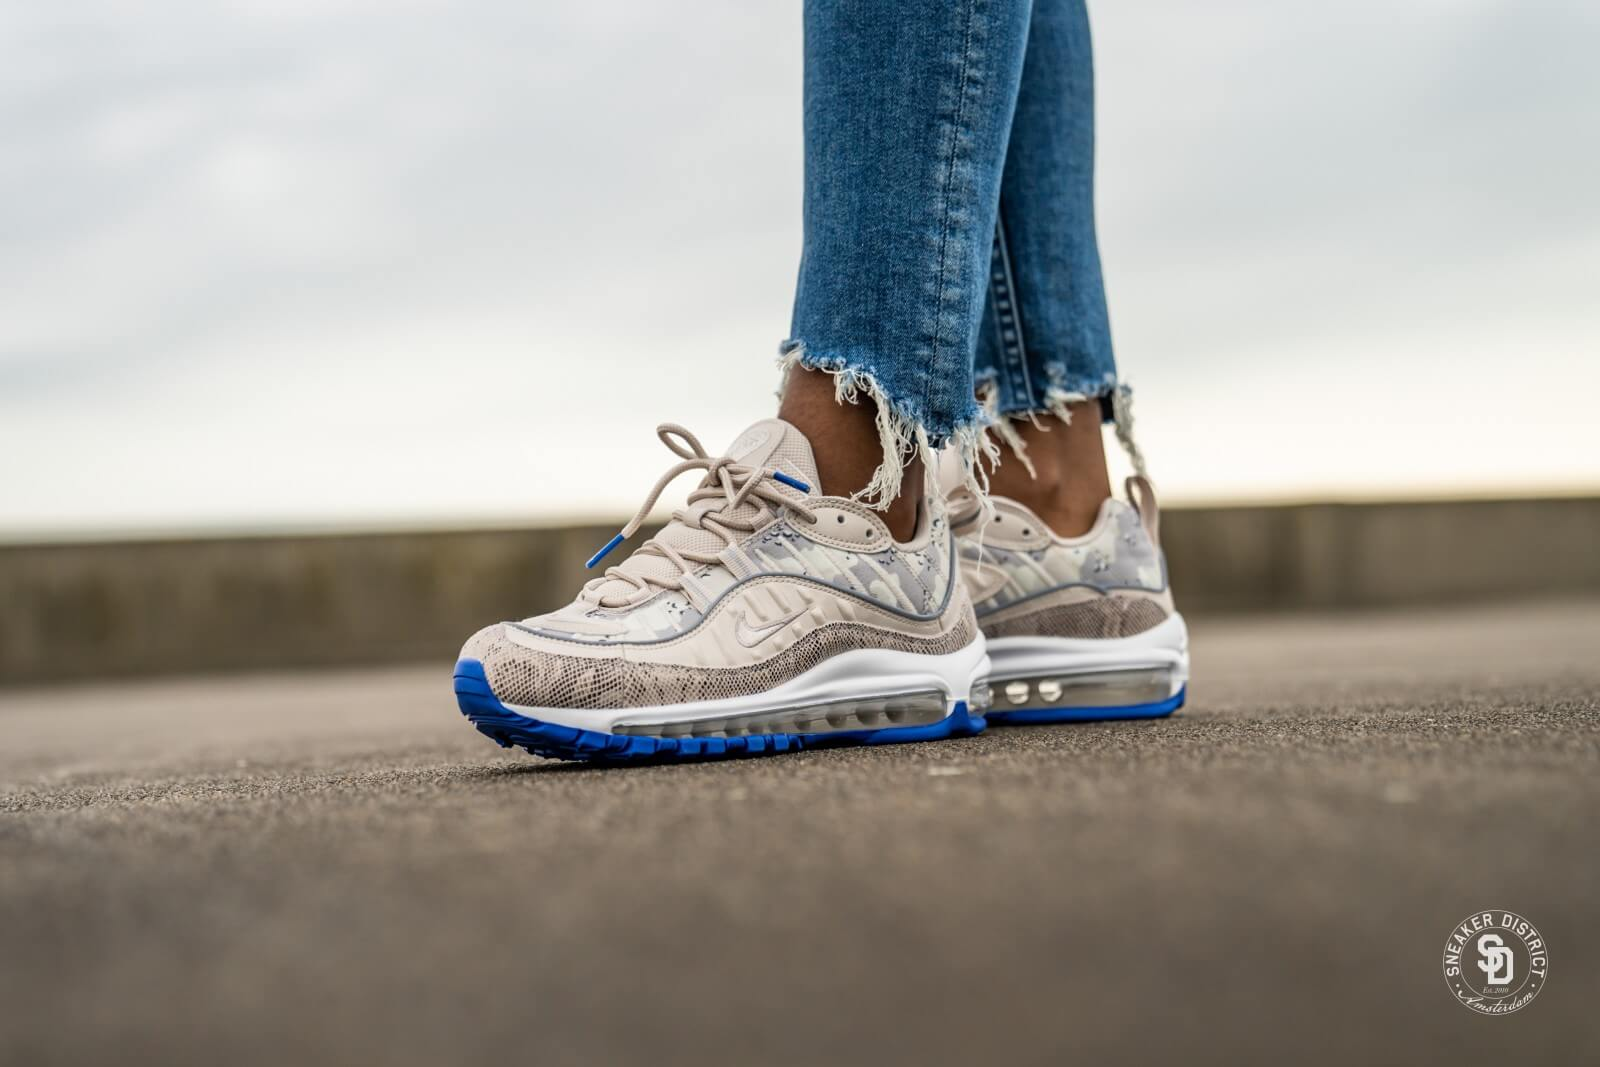 Nike Air Max 98 Premium LT Orewood Brown CI2672 100